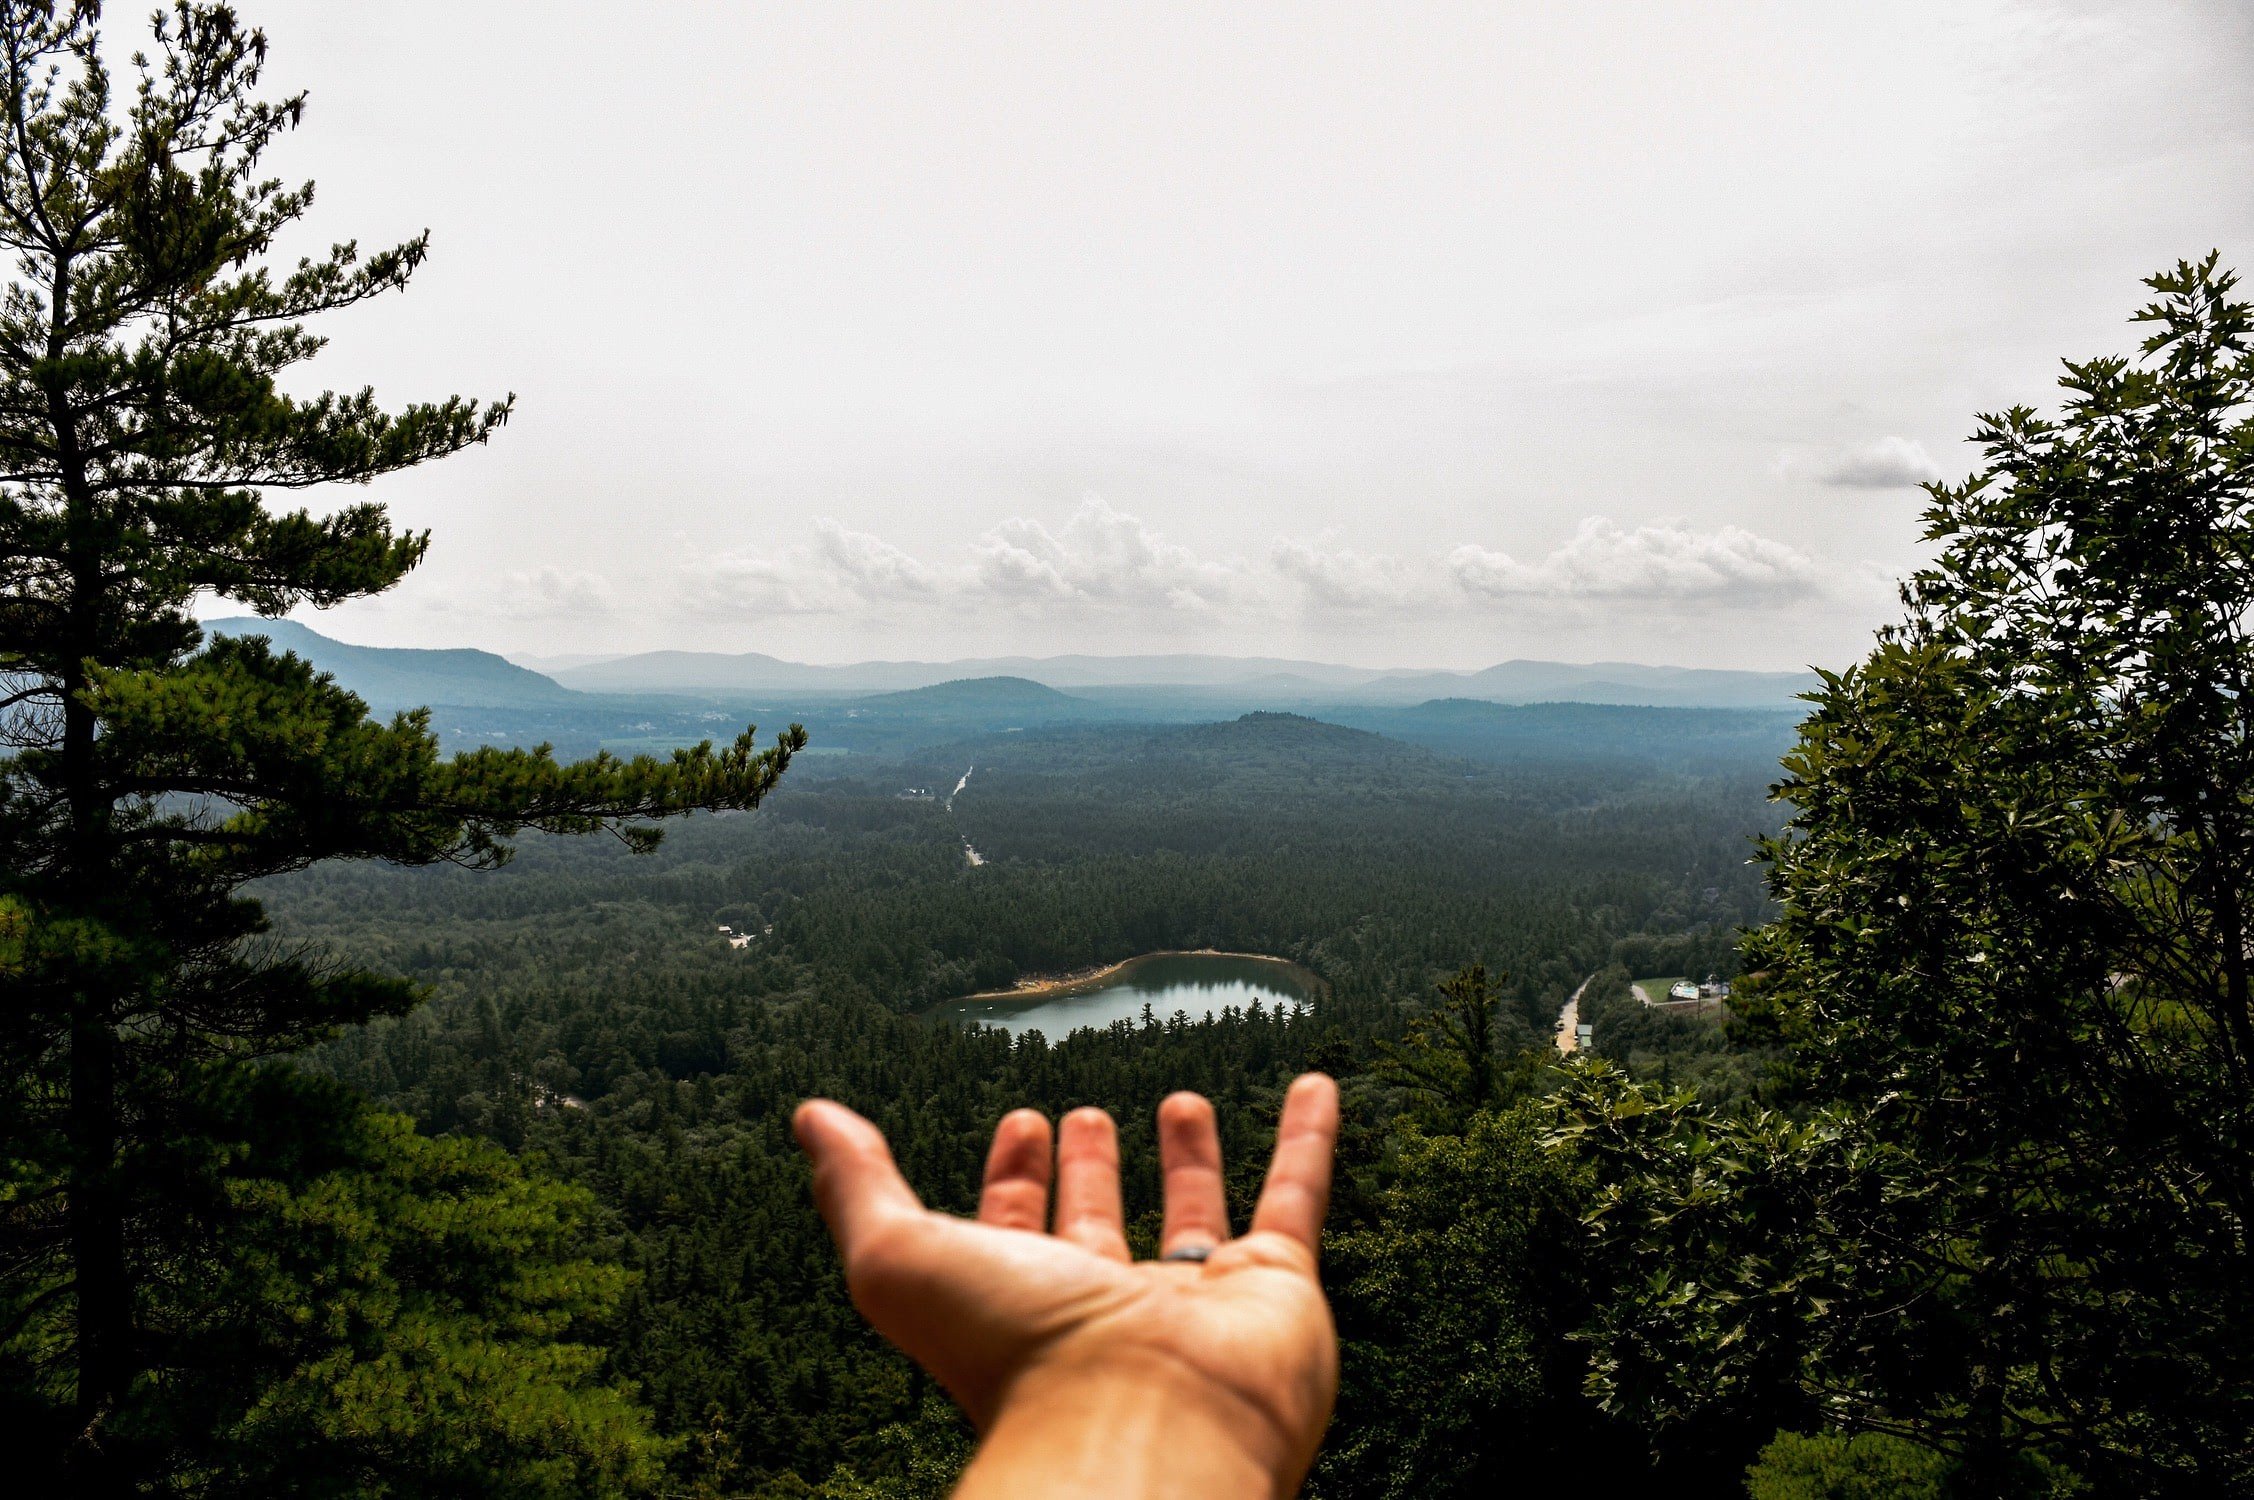 My husband and I embarked on a journey through New Hampshire. Having decided to hike to the top of a mountain, we discovered Lake Echo in the distance. Our dreams are not always as far as they seem.